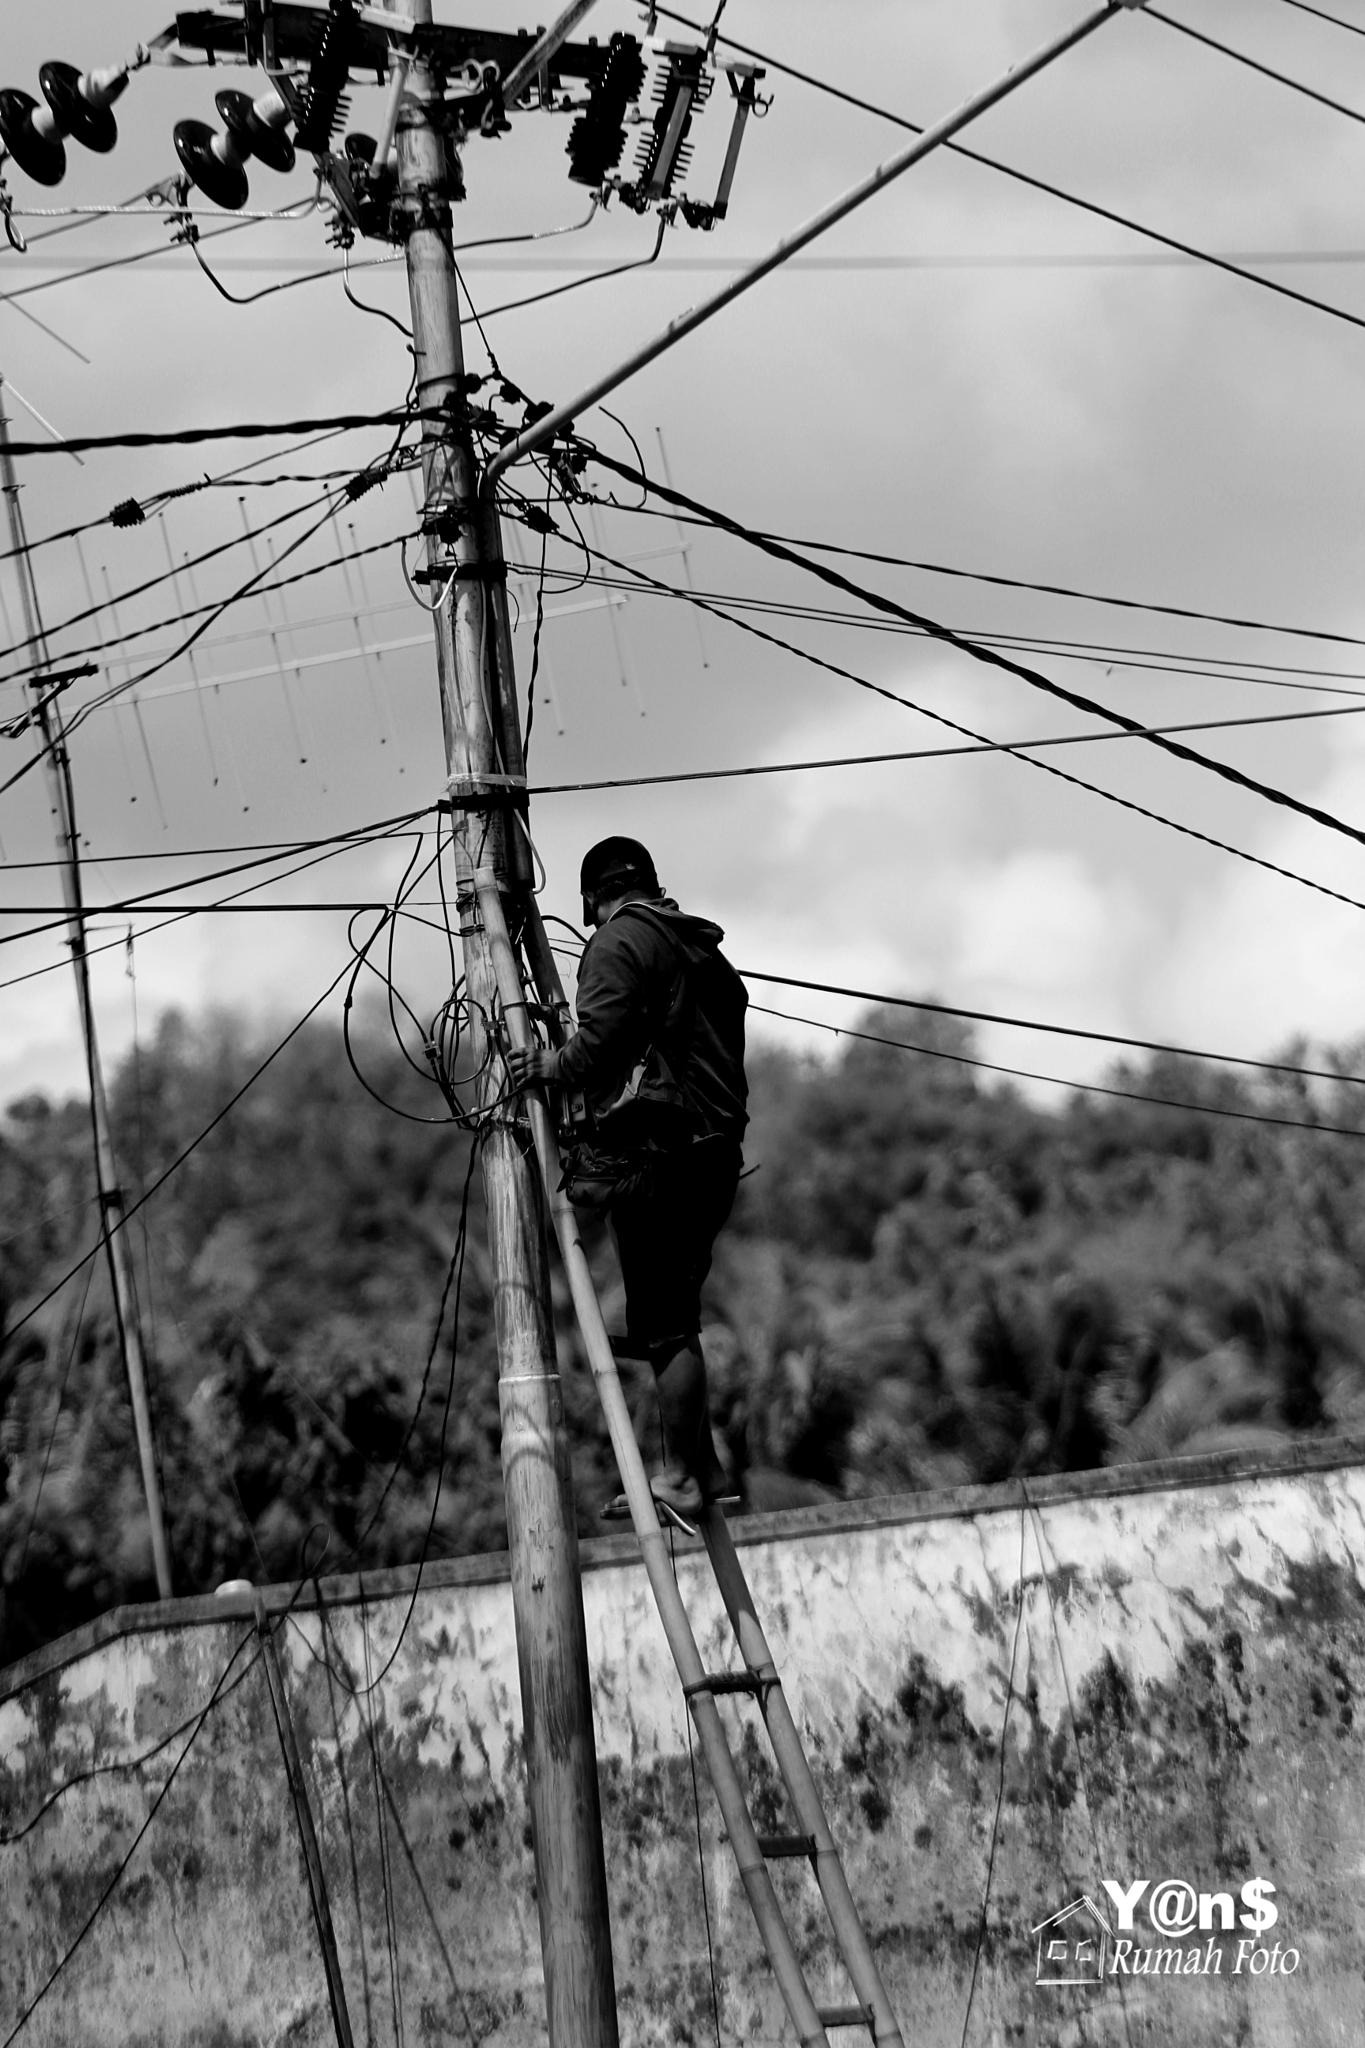 cabel guy by Yans Photography